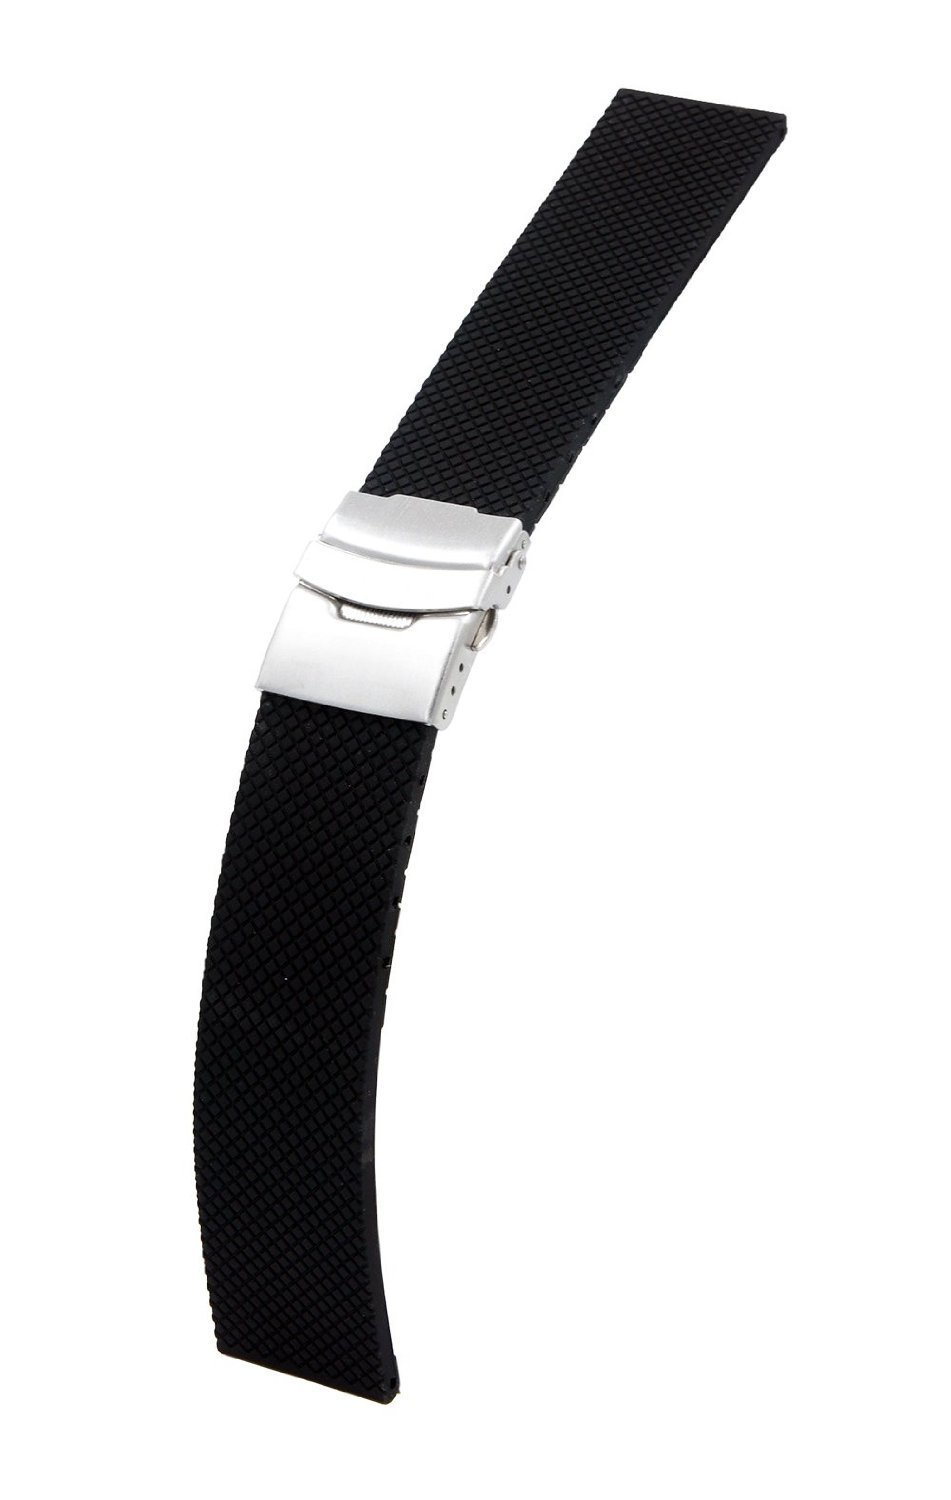 Amazon.com: 24mm Silicone Sports Watch Strap Band With ...